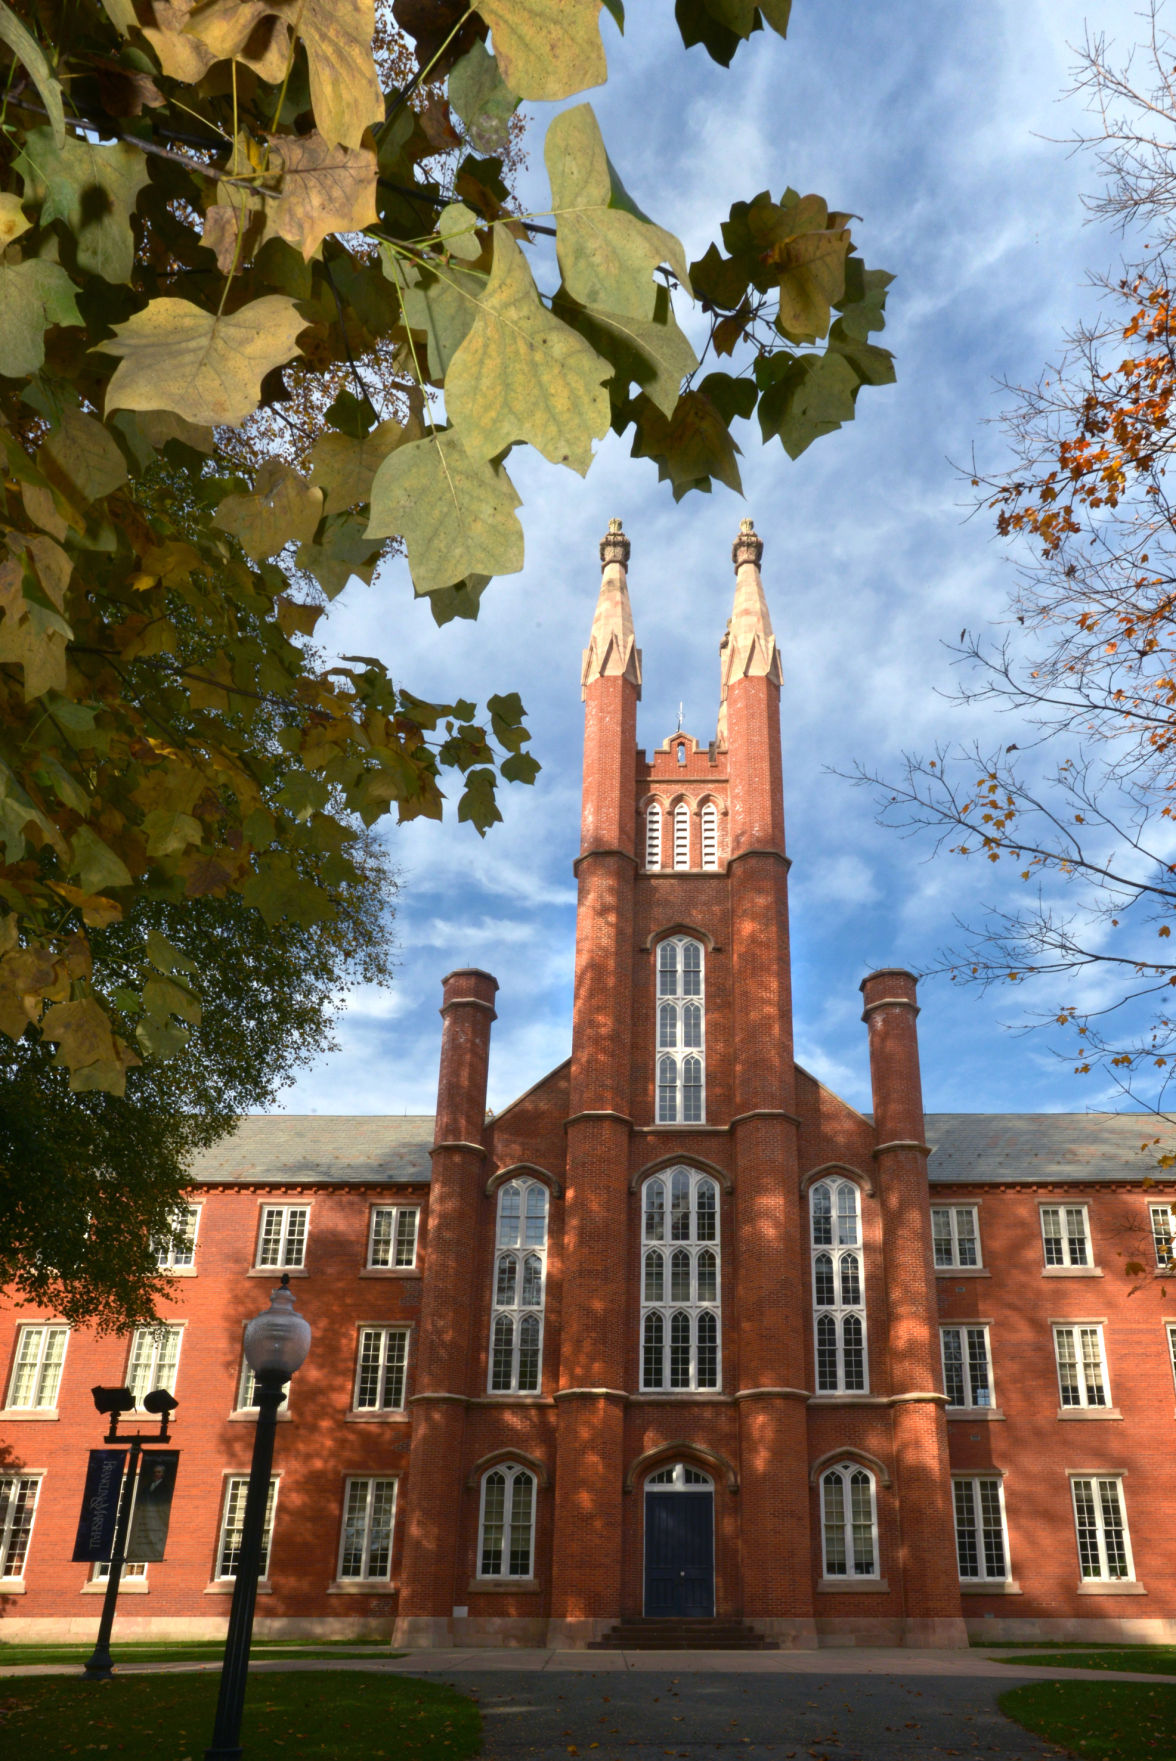 Franklin and Marshall is one of the most expensive private universities in the United States